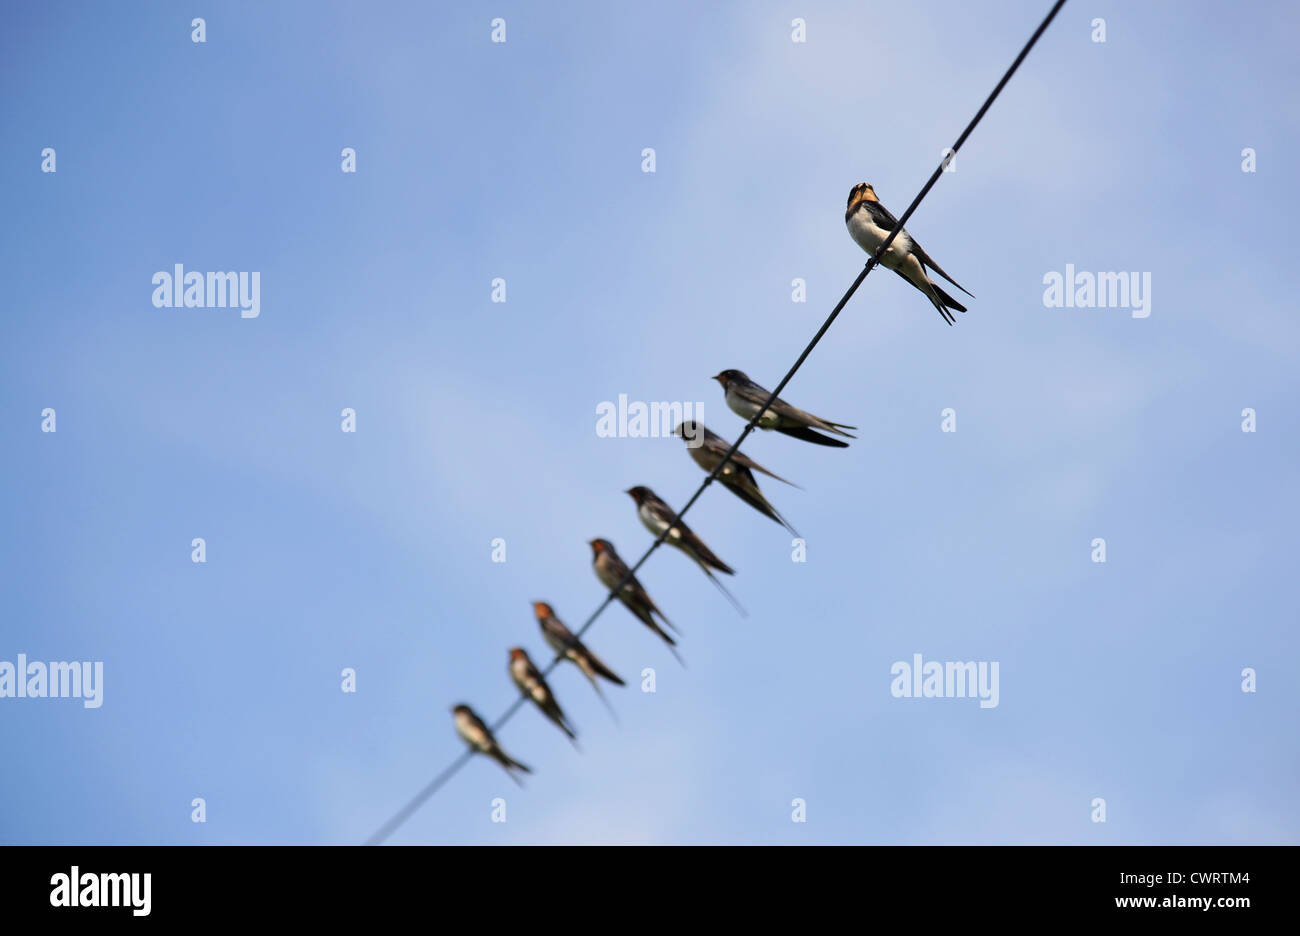 Swallows getting ready to fly away for the winter. - Stock Image